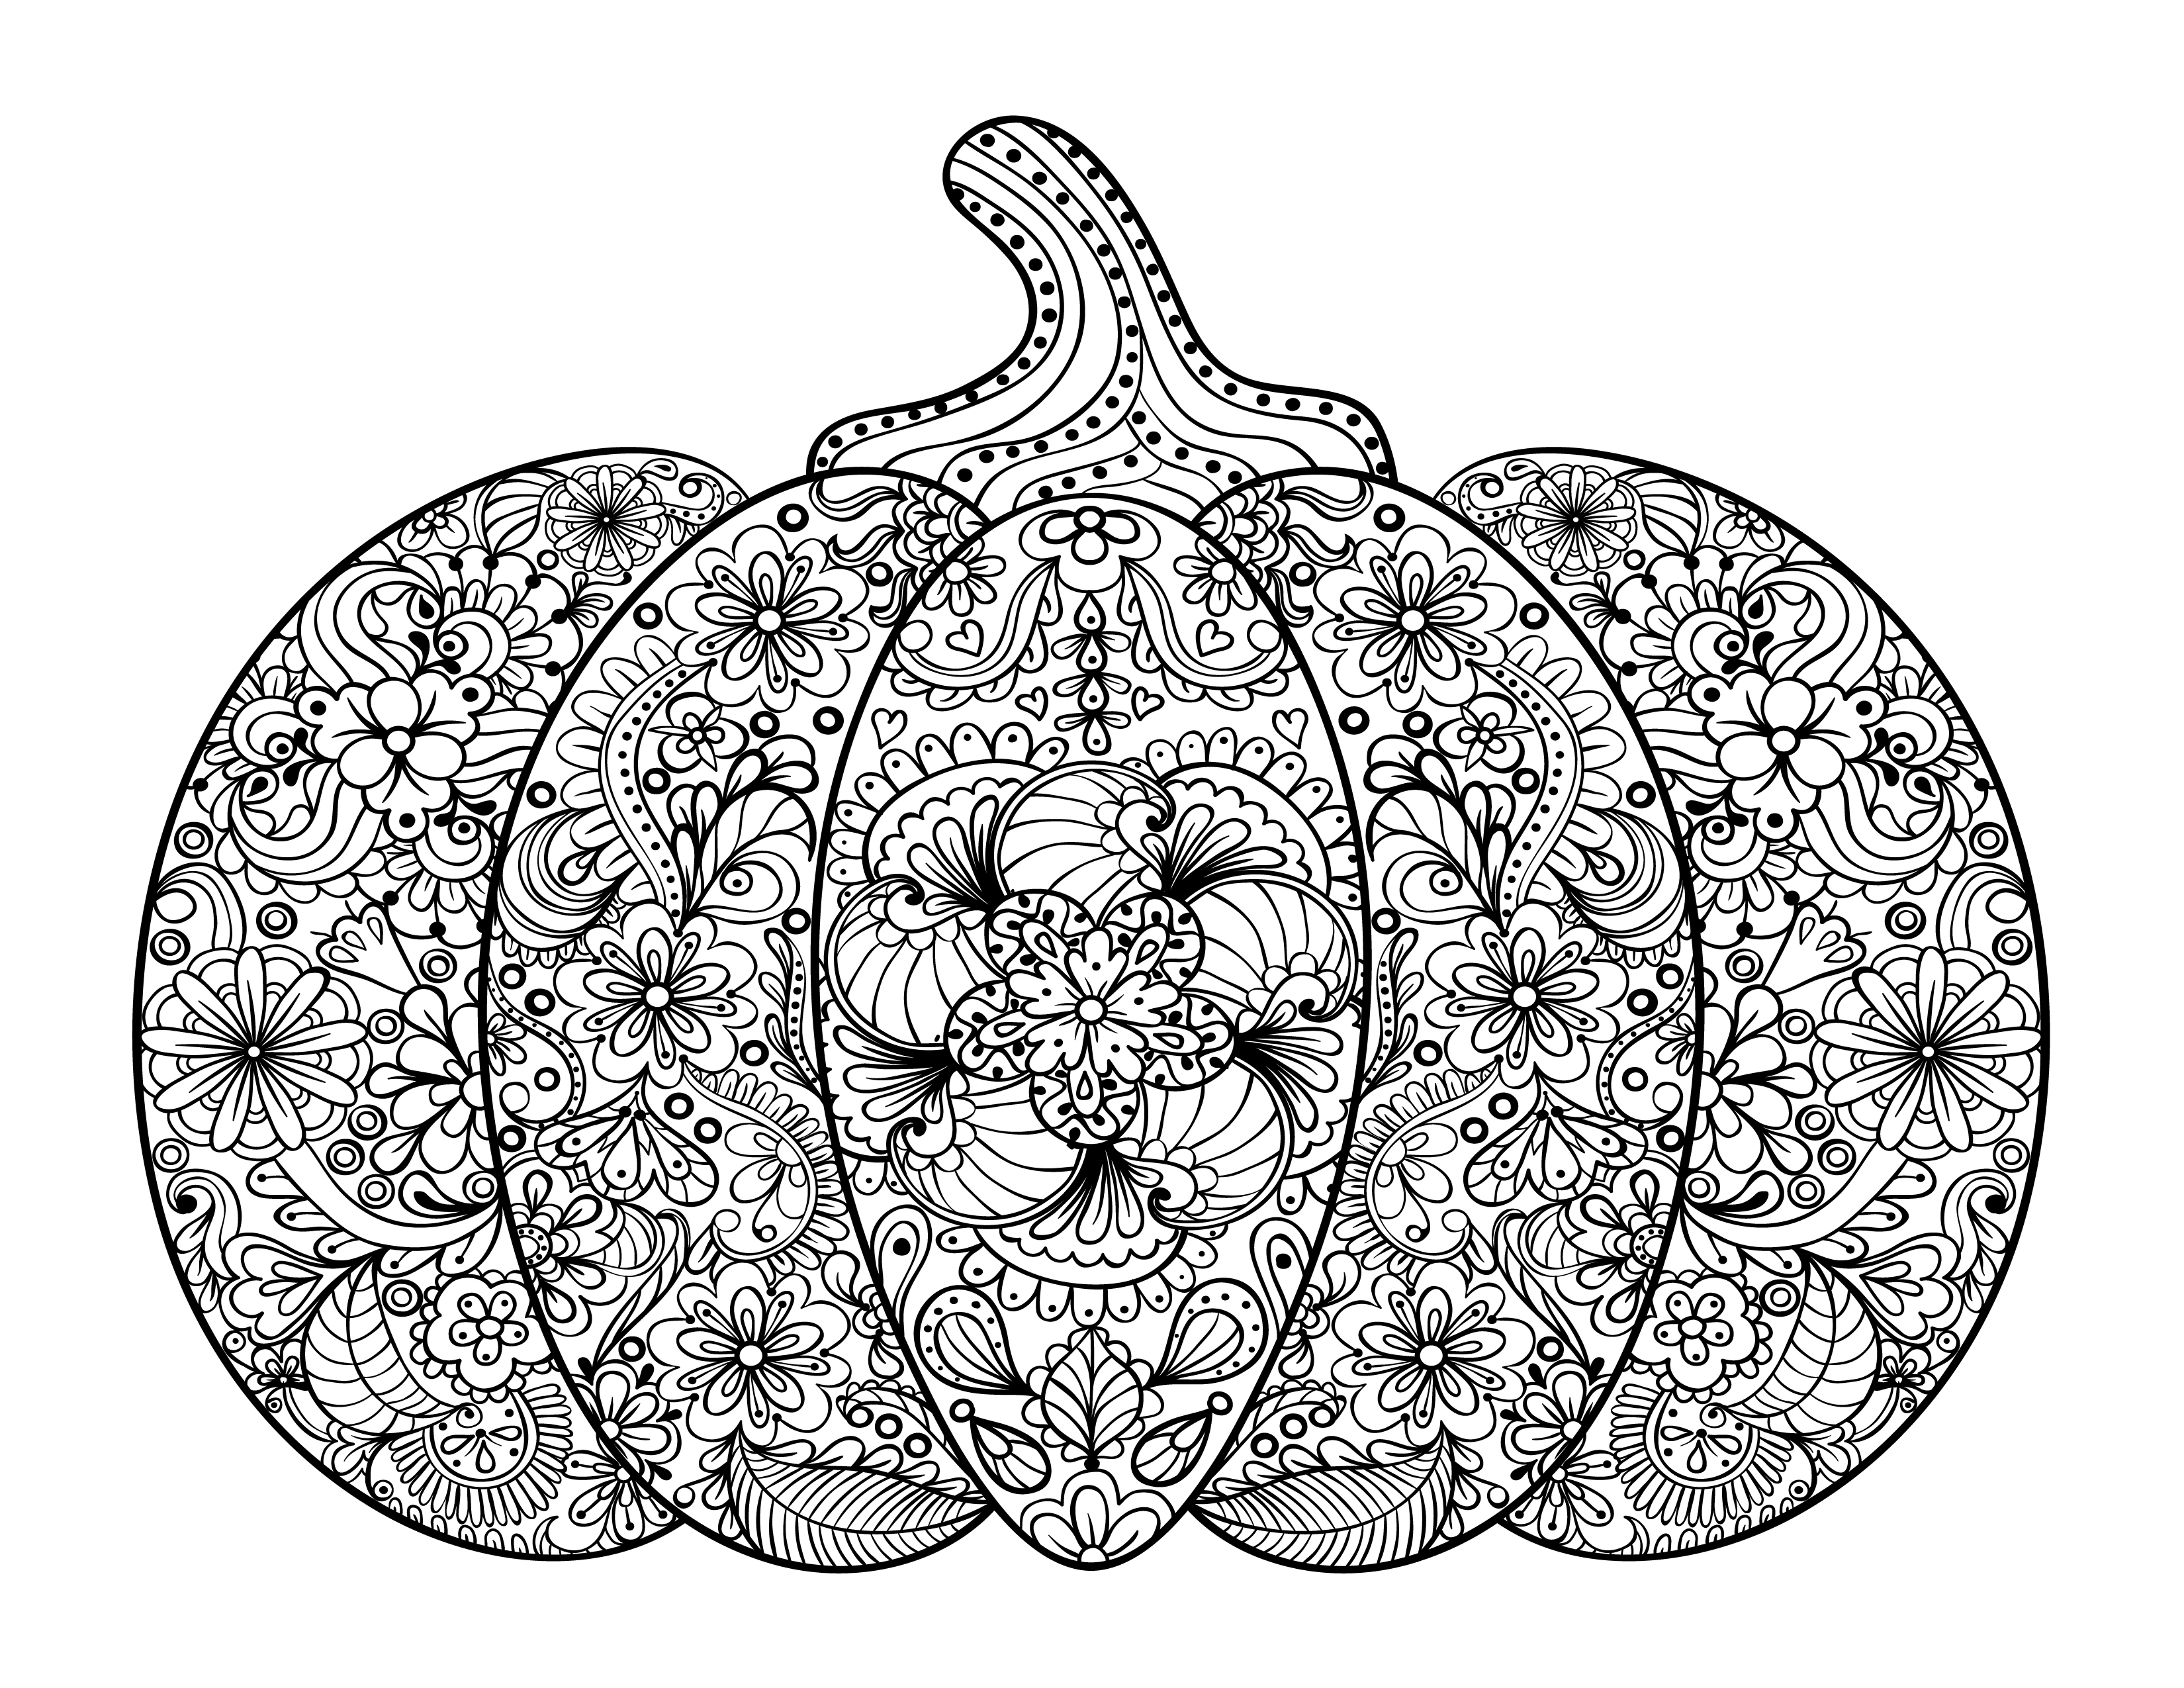 coloring books for adults online owl coloring pages for adults free detailed owl coloring adults books for coloring online